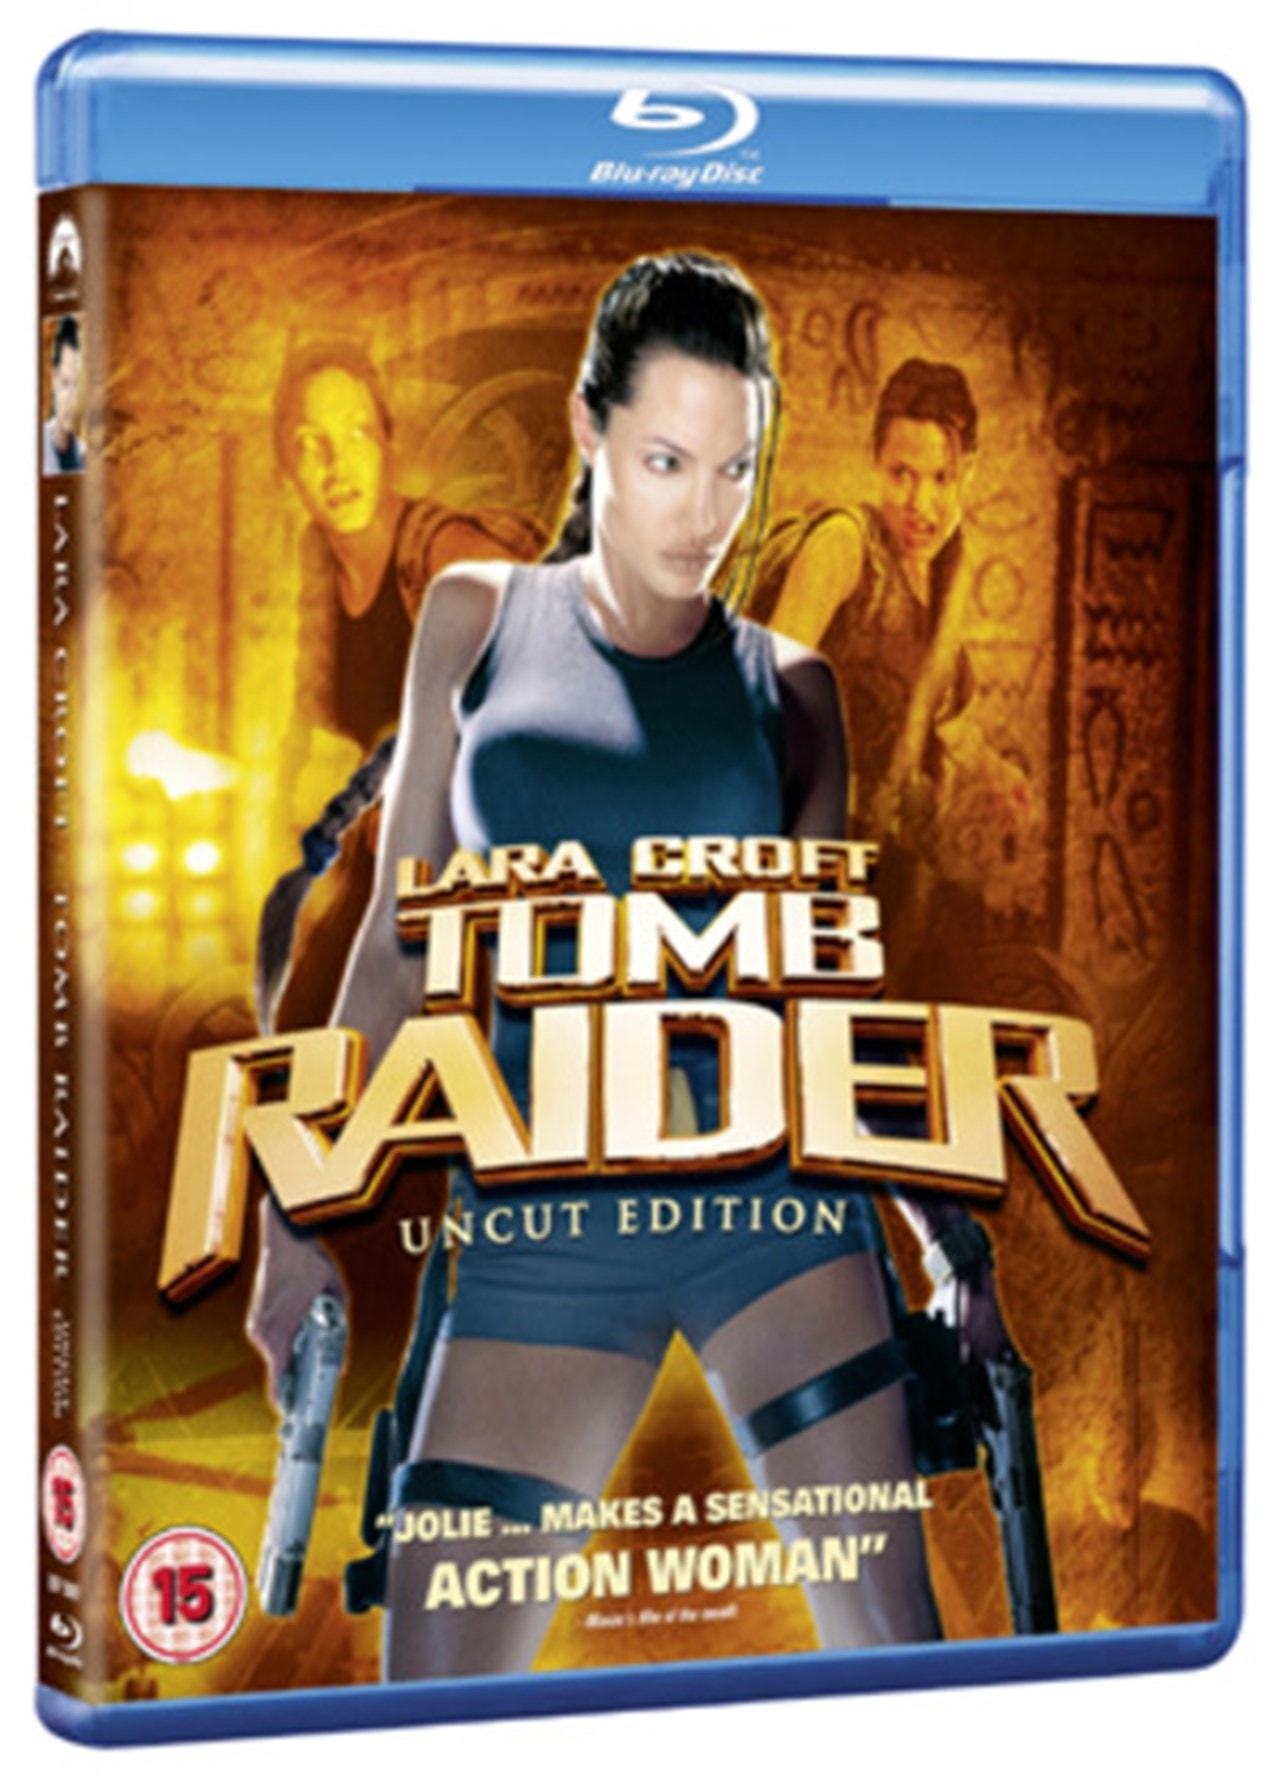 Lara Croft - Tomb Raider: Uncut Edition - 1